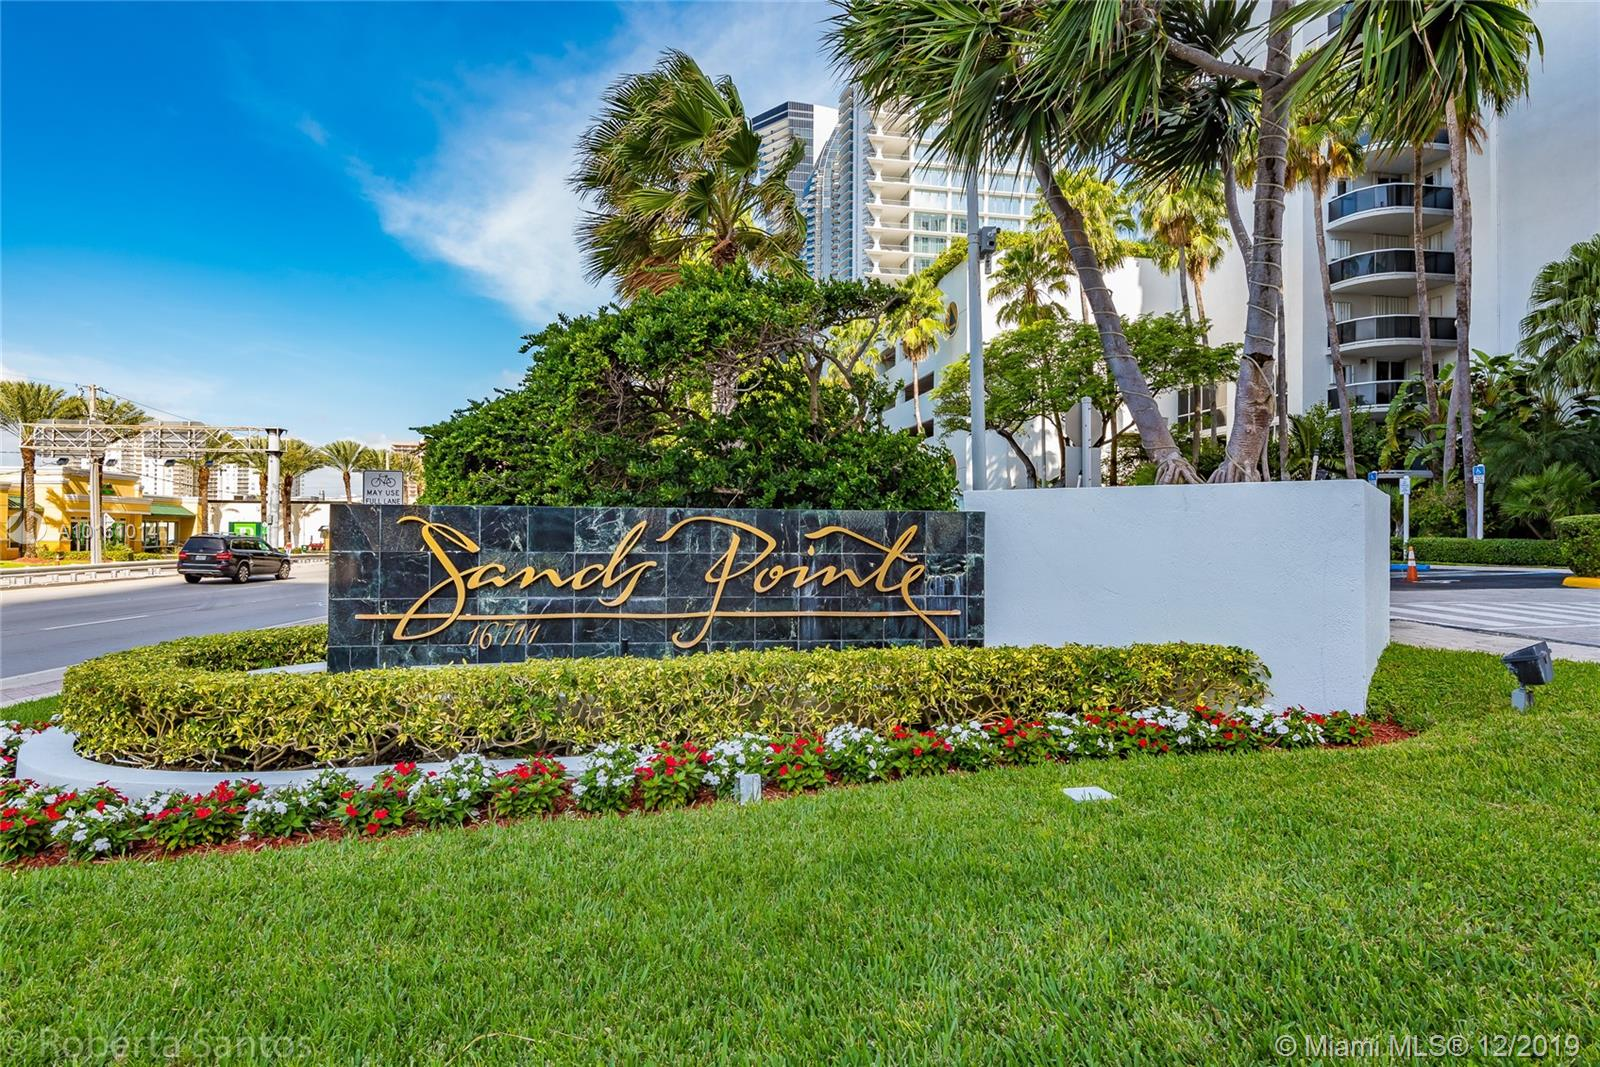 16711 Collins Ave # 1401, Sunny Isles Beach FL 33160